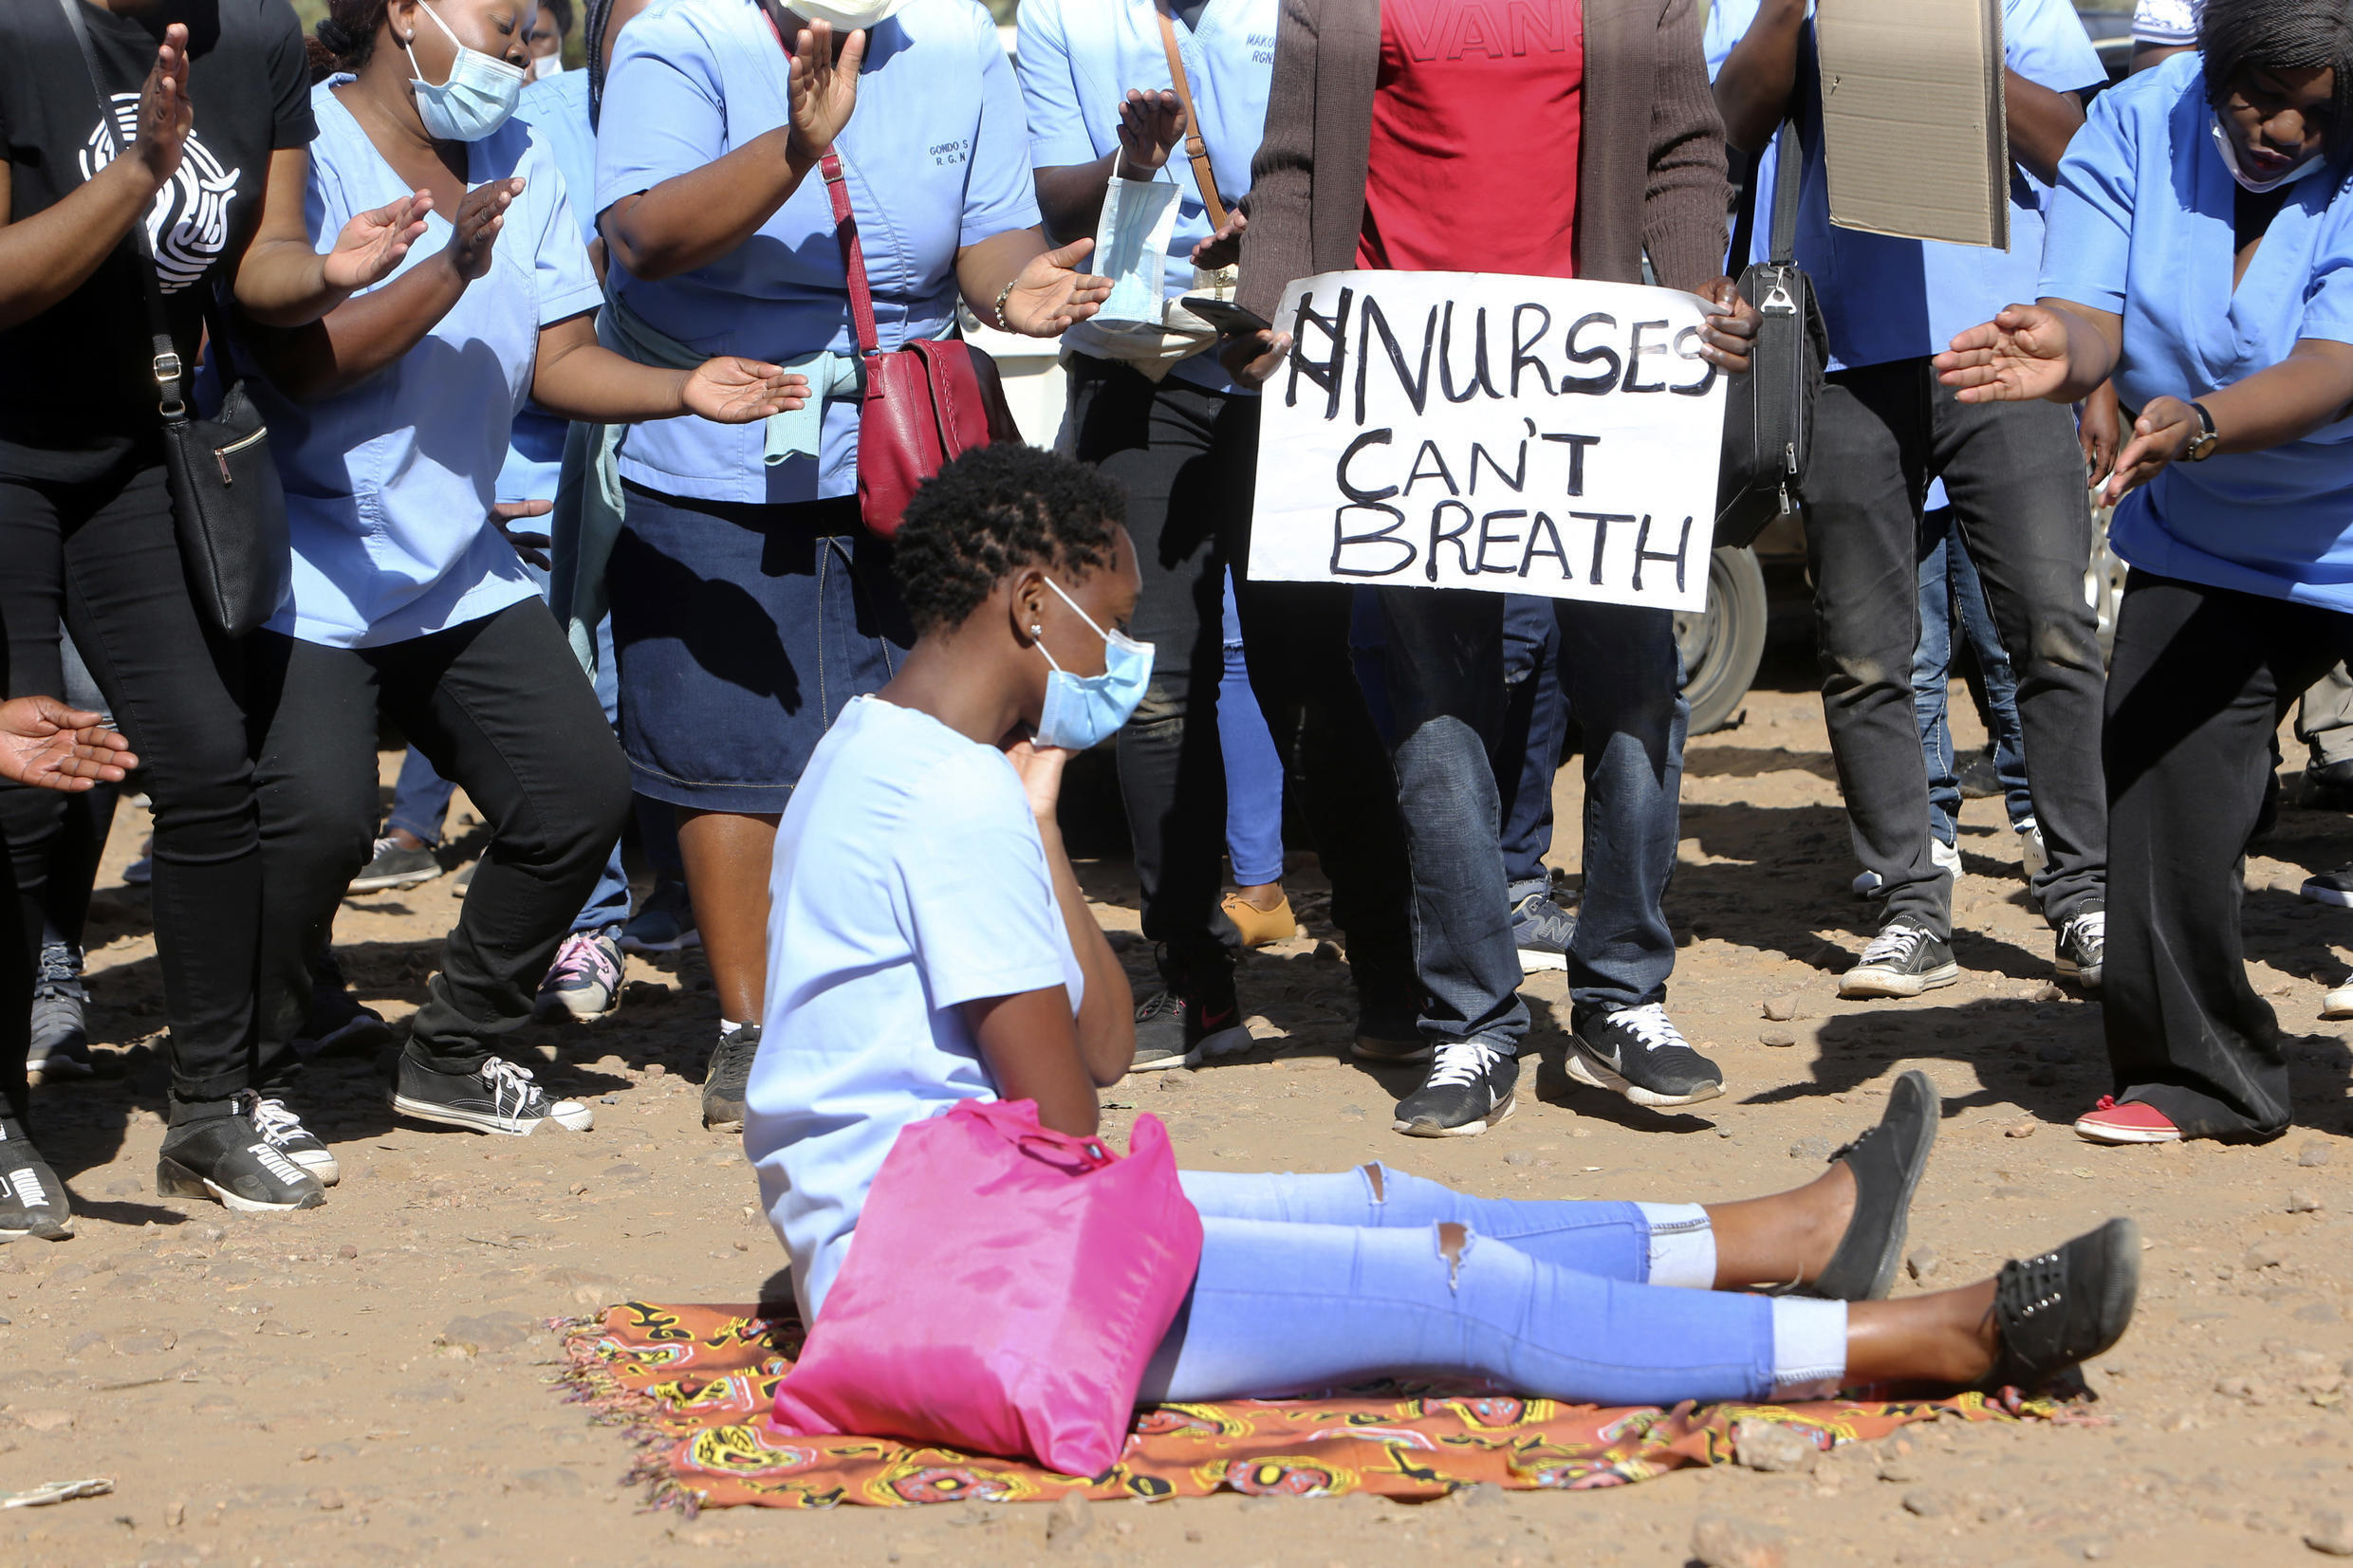 Nurses taking part in a protest at a Harare, Zimbabwe hospital, Monday, July, 6, 2020. Thousands of nurses working in public hospitals stopped reporting for work in mid-June, as health workers earn less than US$50 a month